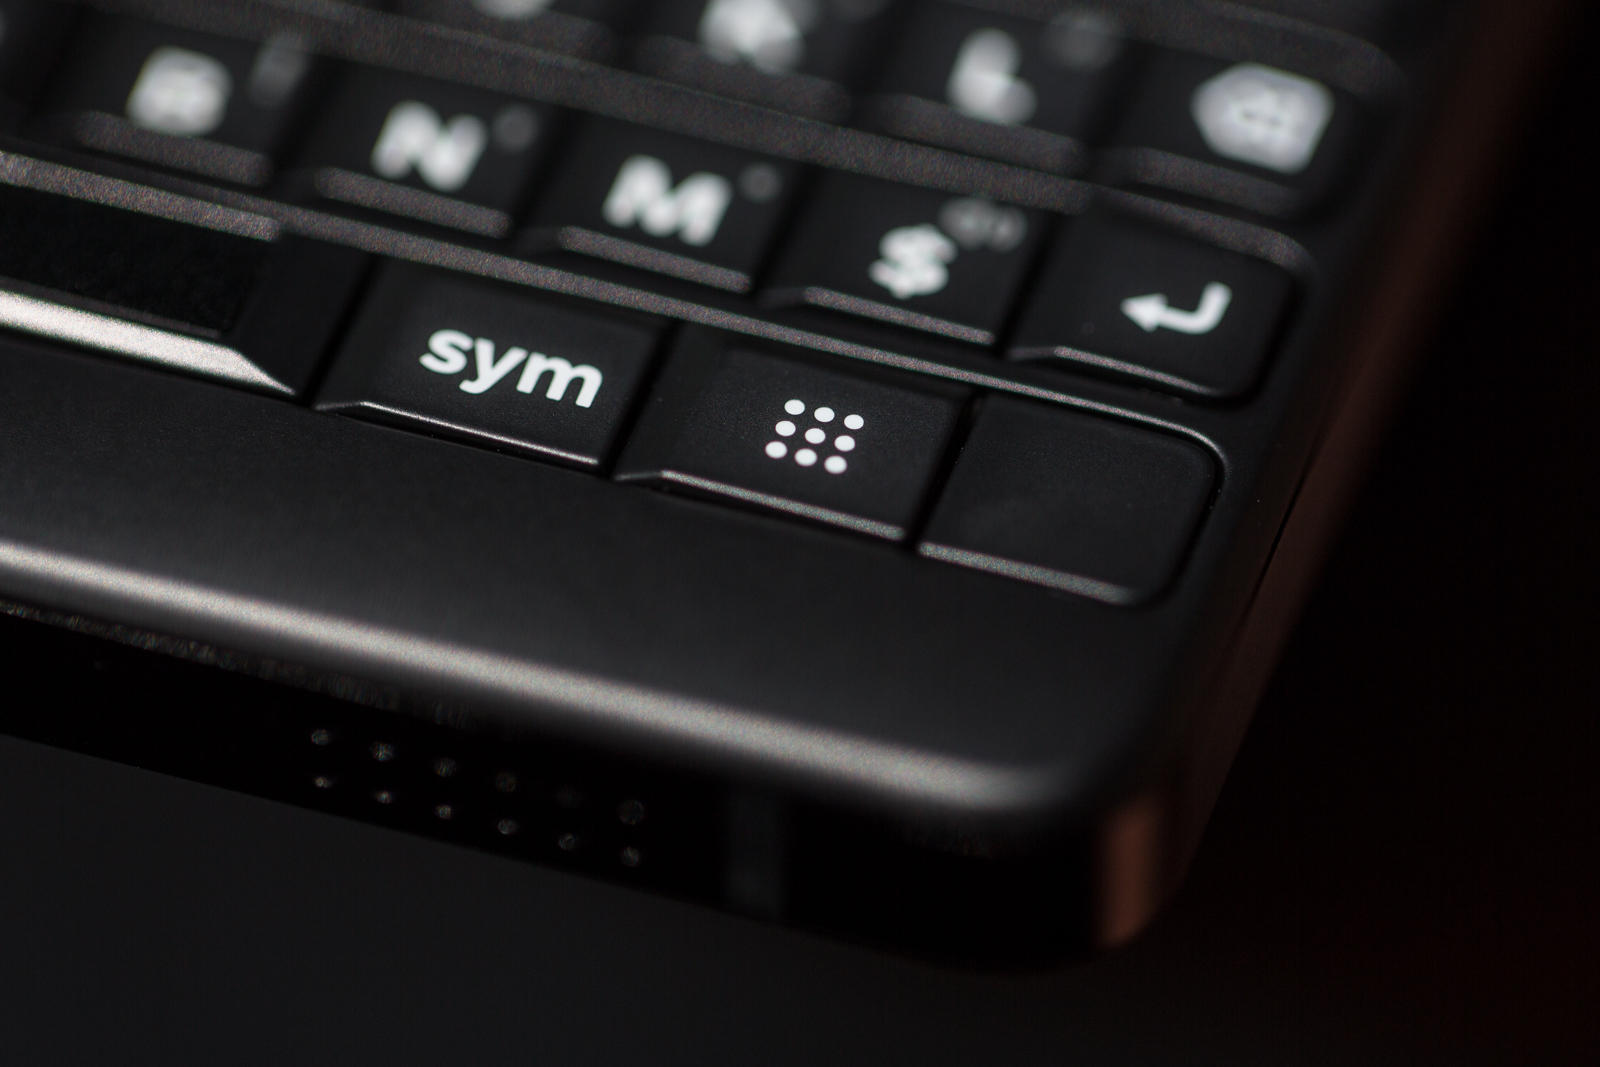 BlackBerry phones to return in 2021, with 5G and physical keyboard